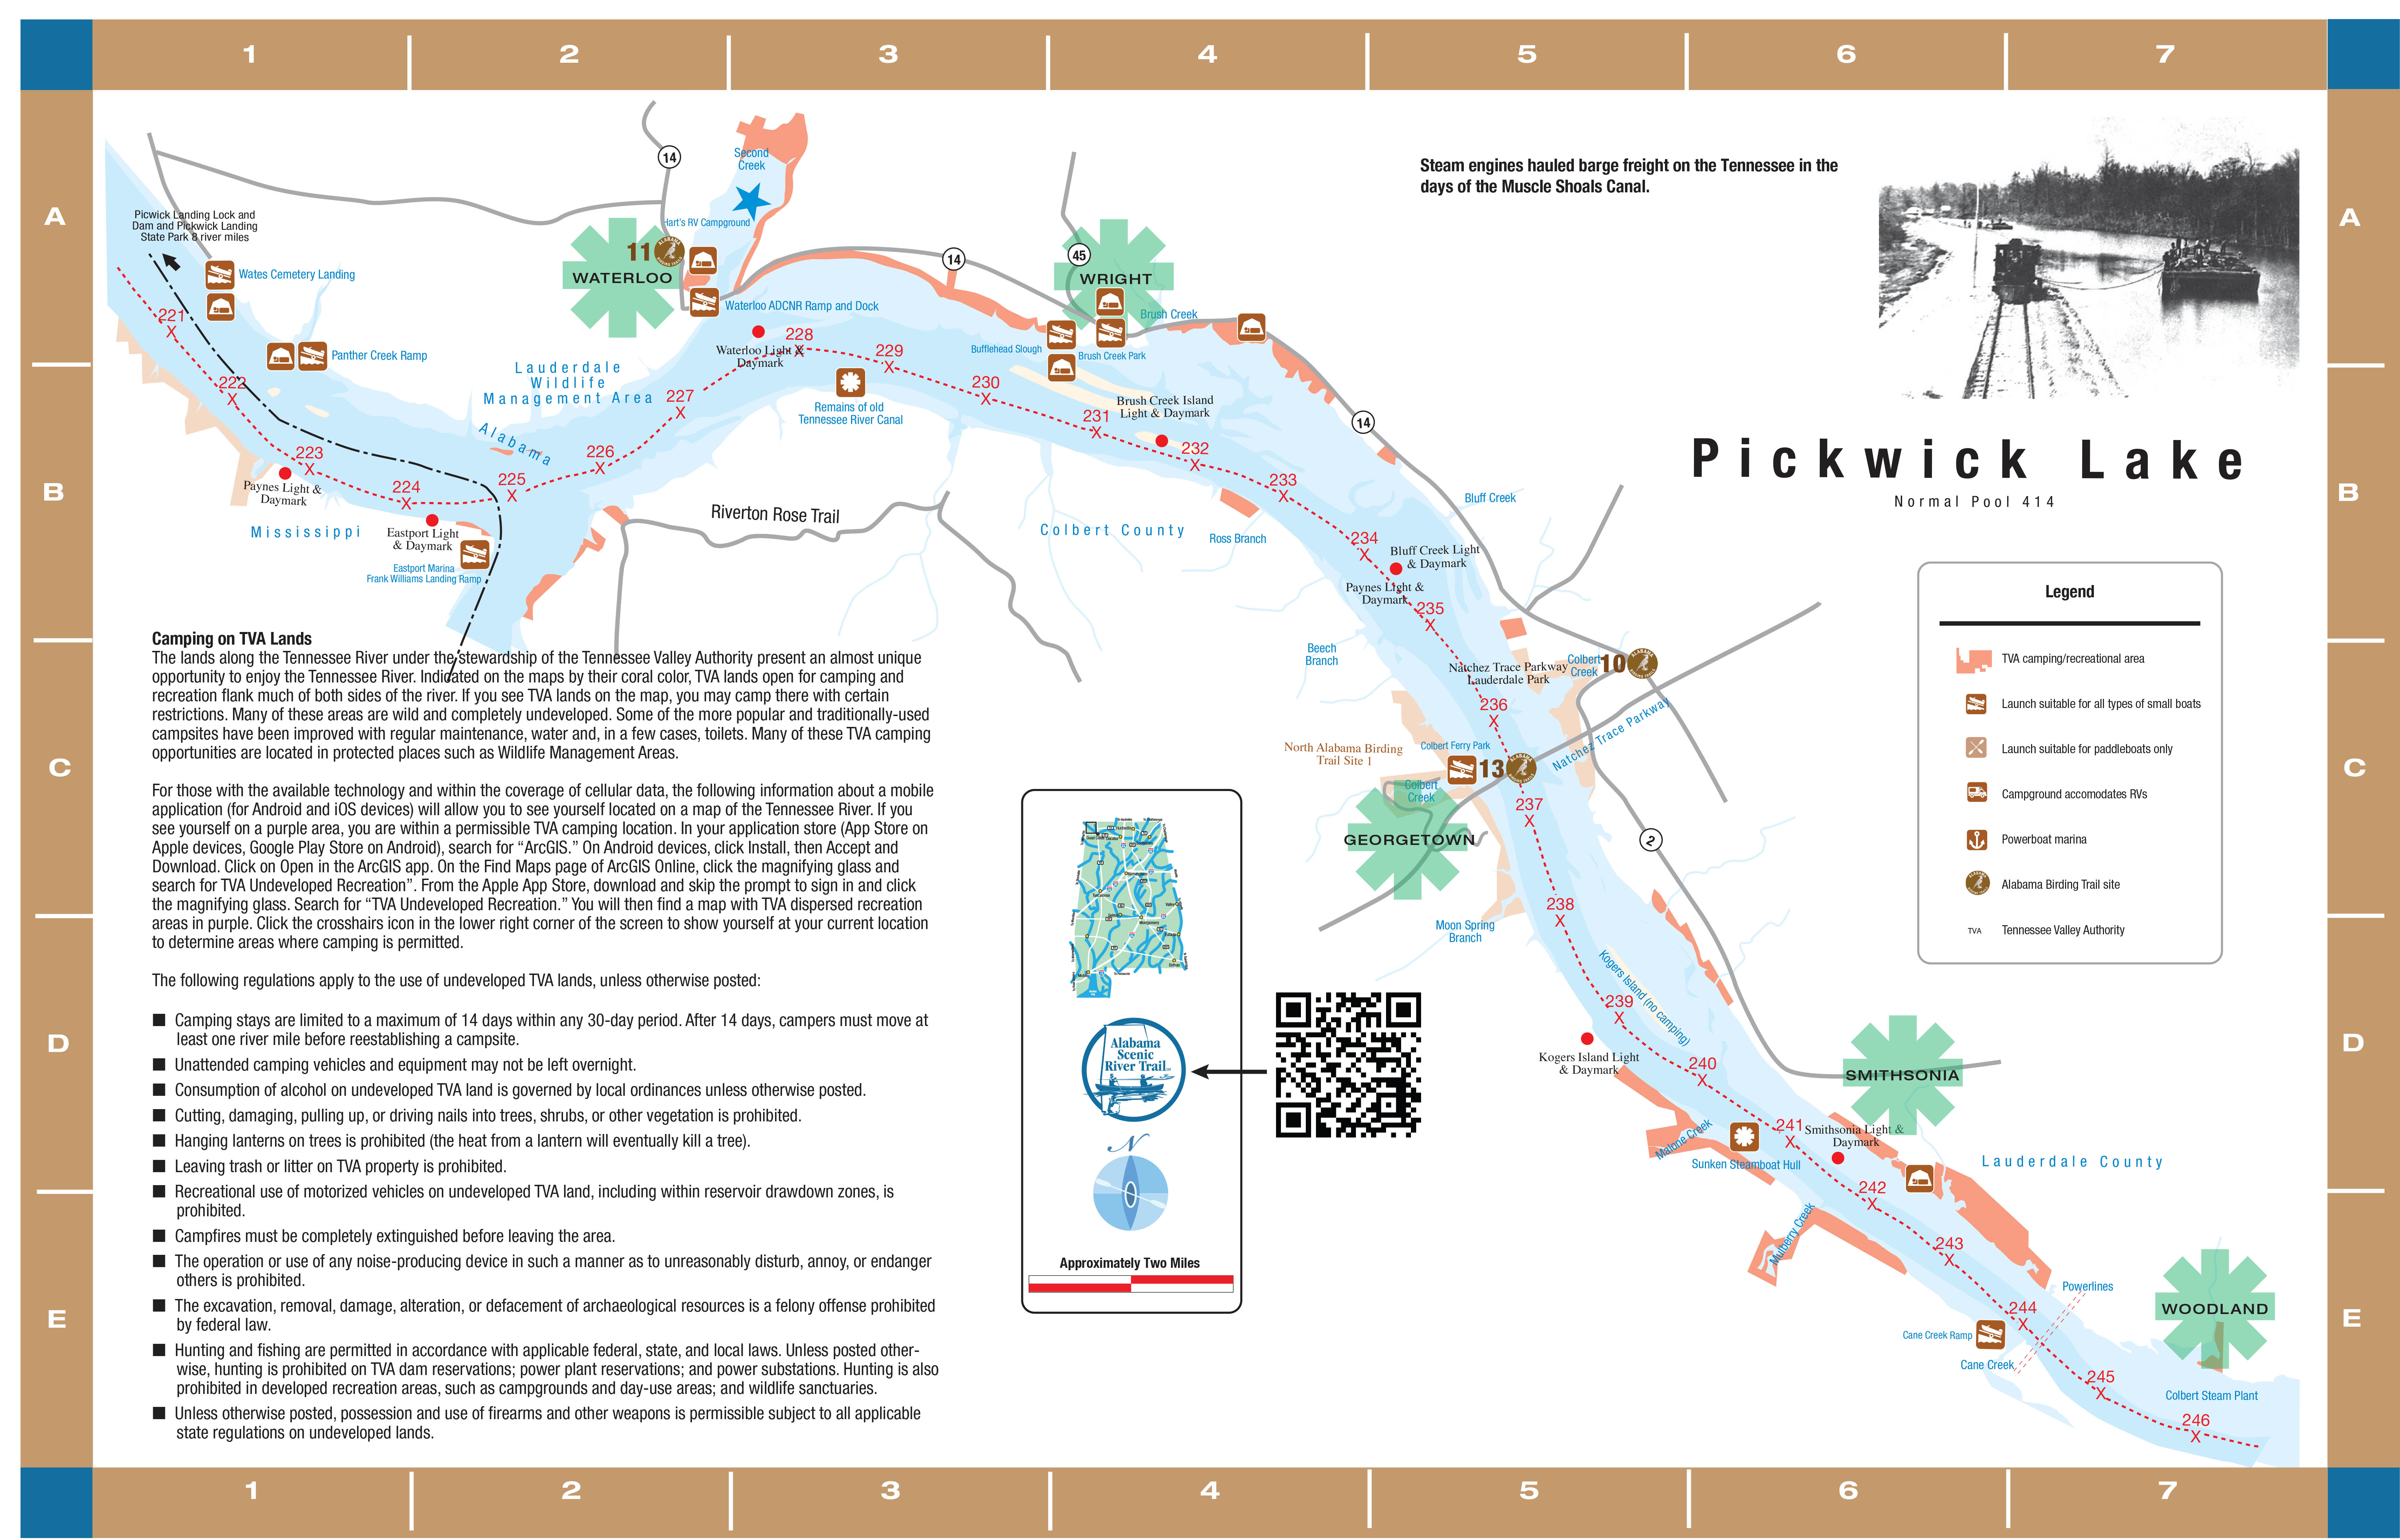 Pickwick Lake Map Tennessee River—Pickwick Lake to Alabama Mississippi State Line